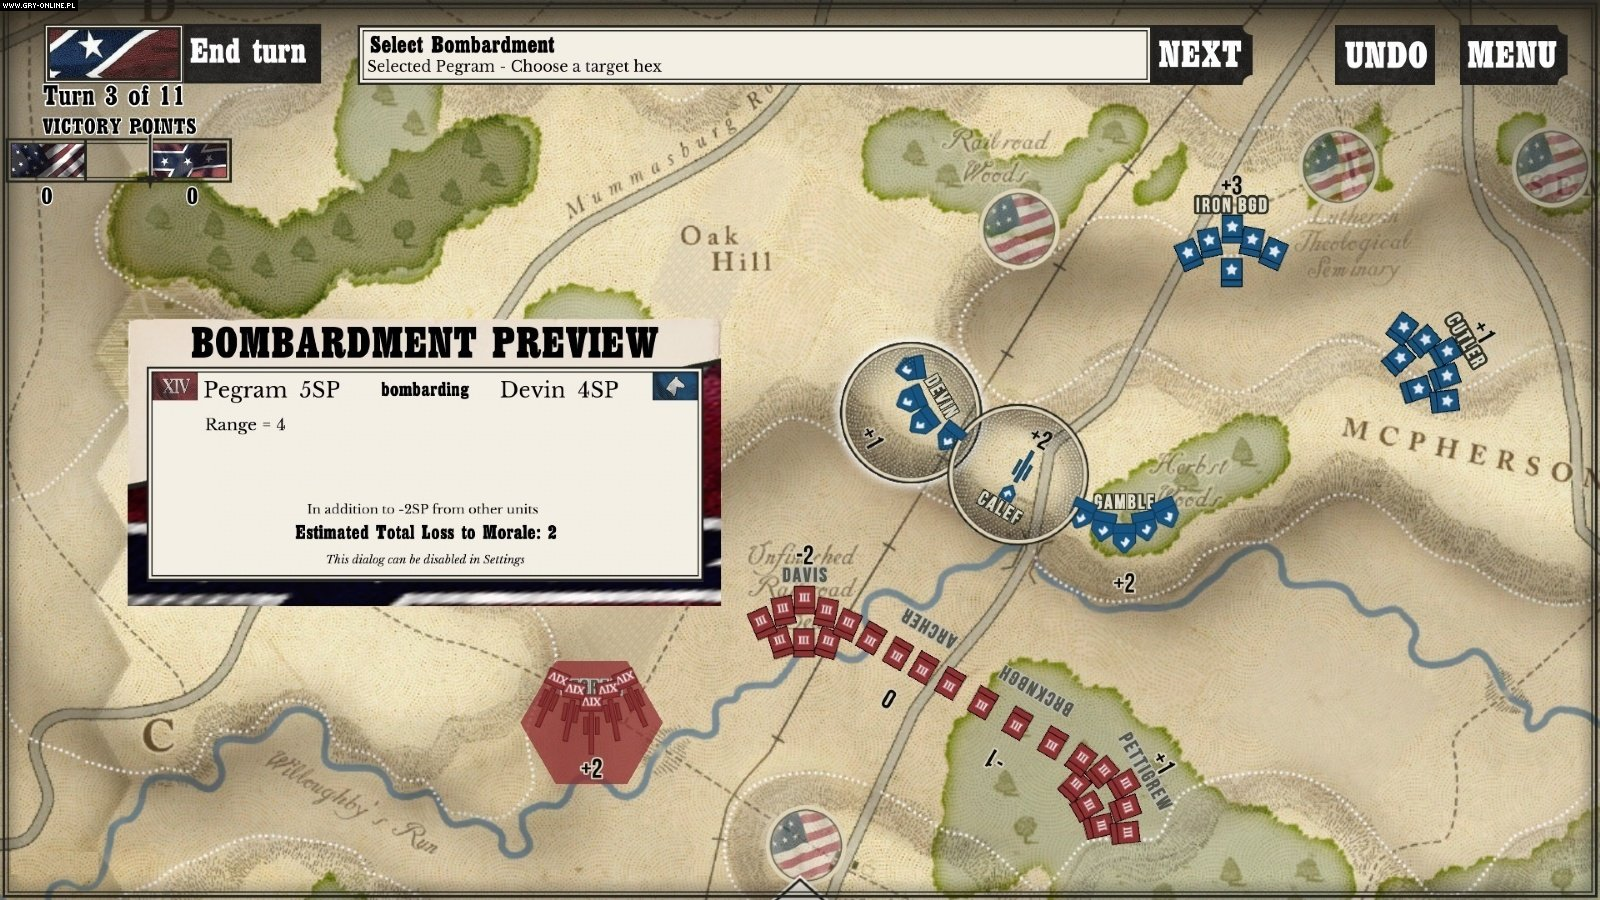 Gettysburg: The Tide Turns PC, iOS Games Image 1/4, Shenandoah Studio, Matrix Games/Slitherine